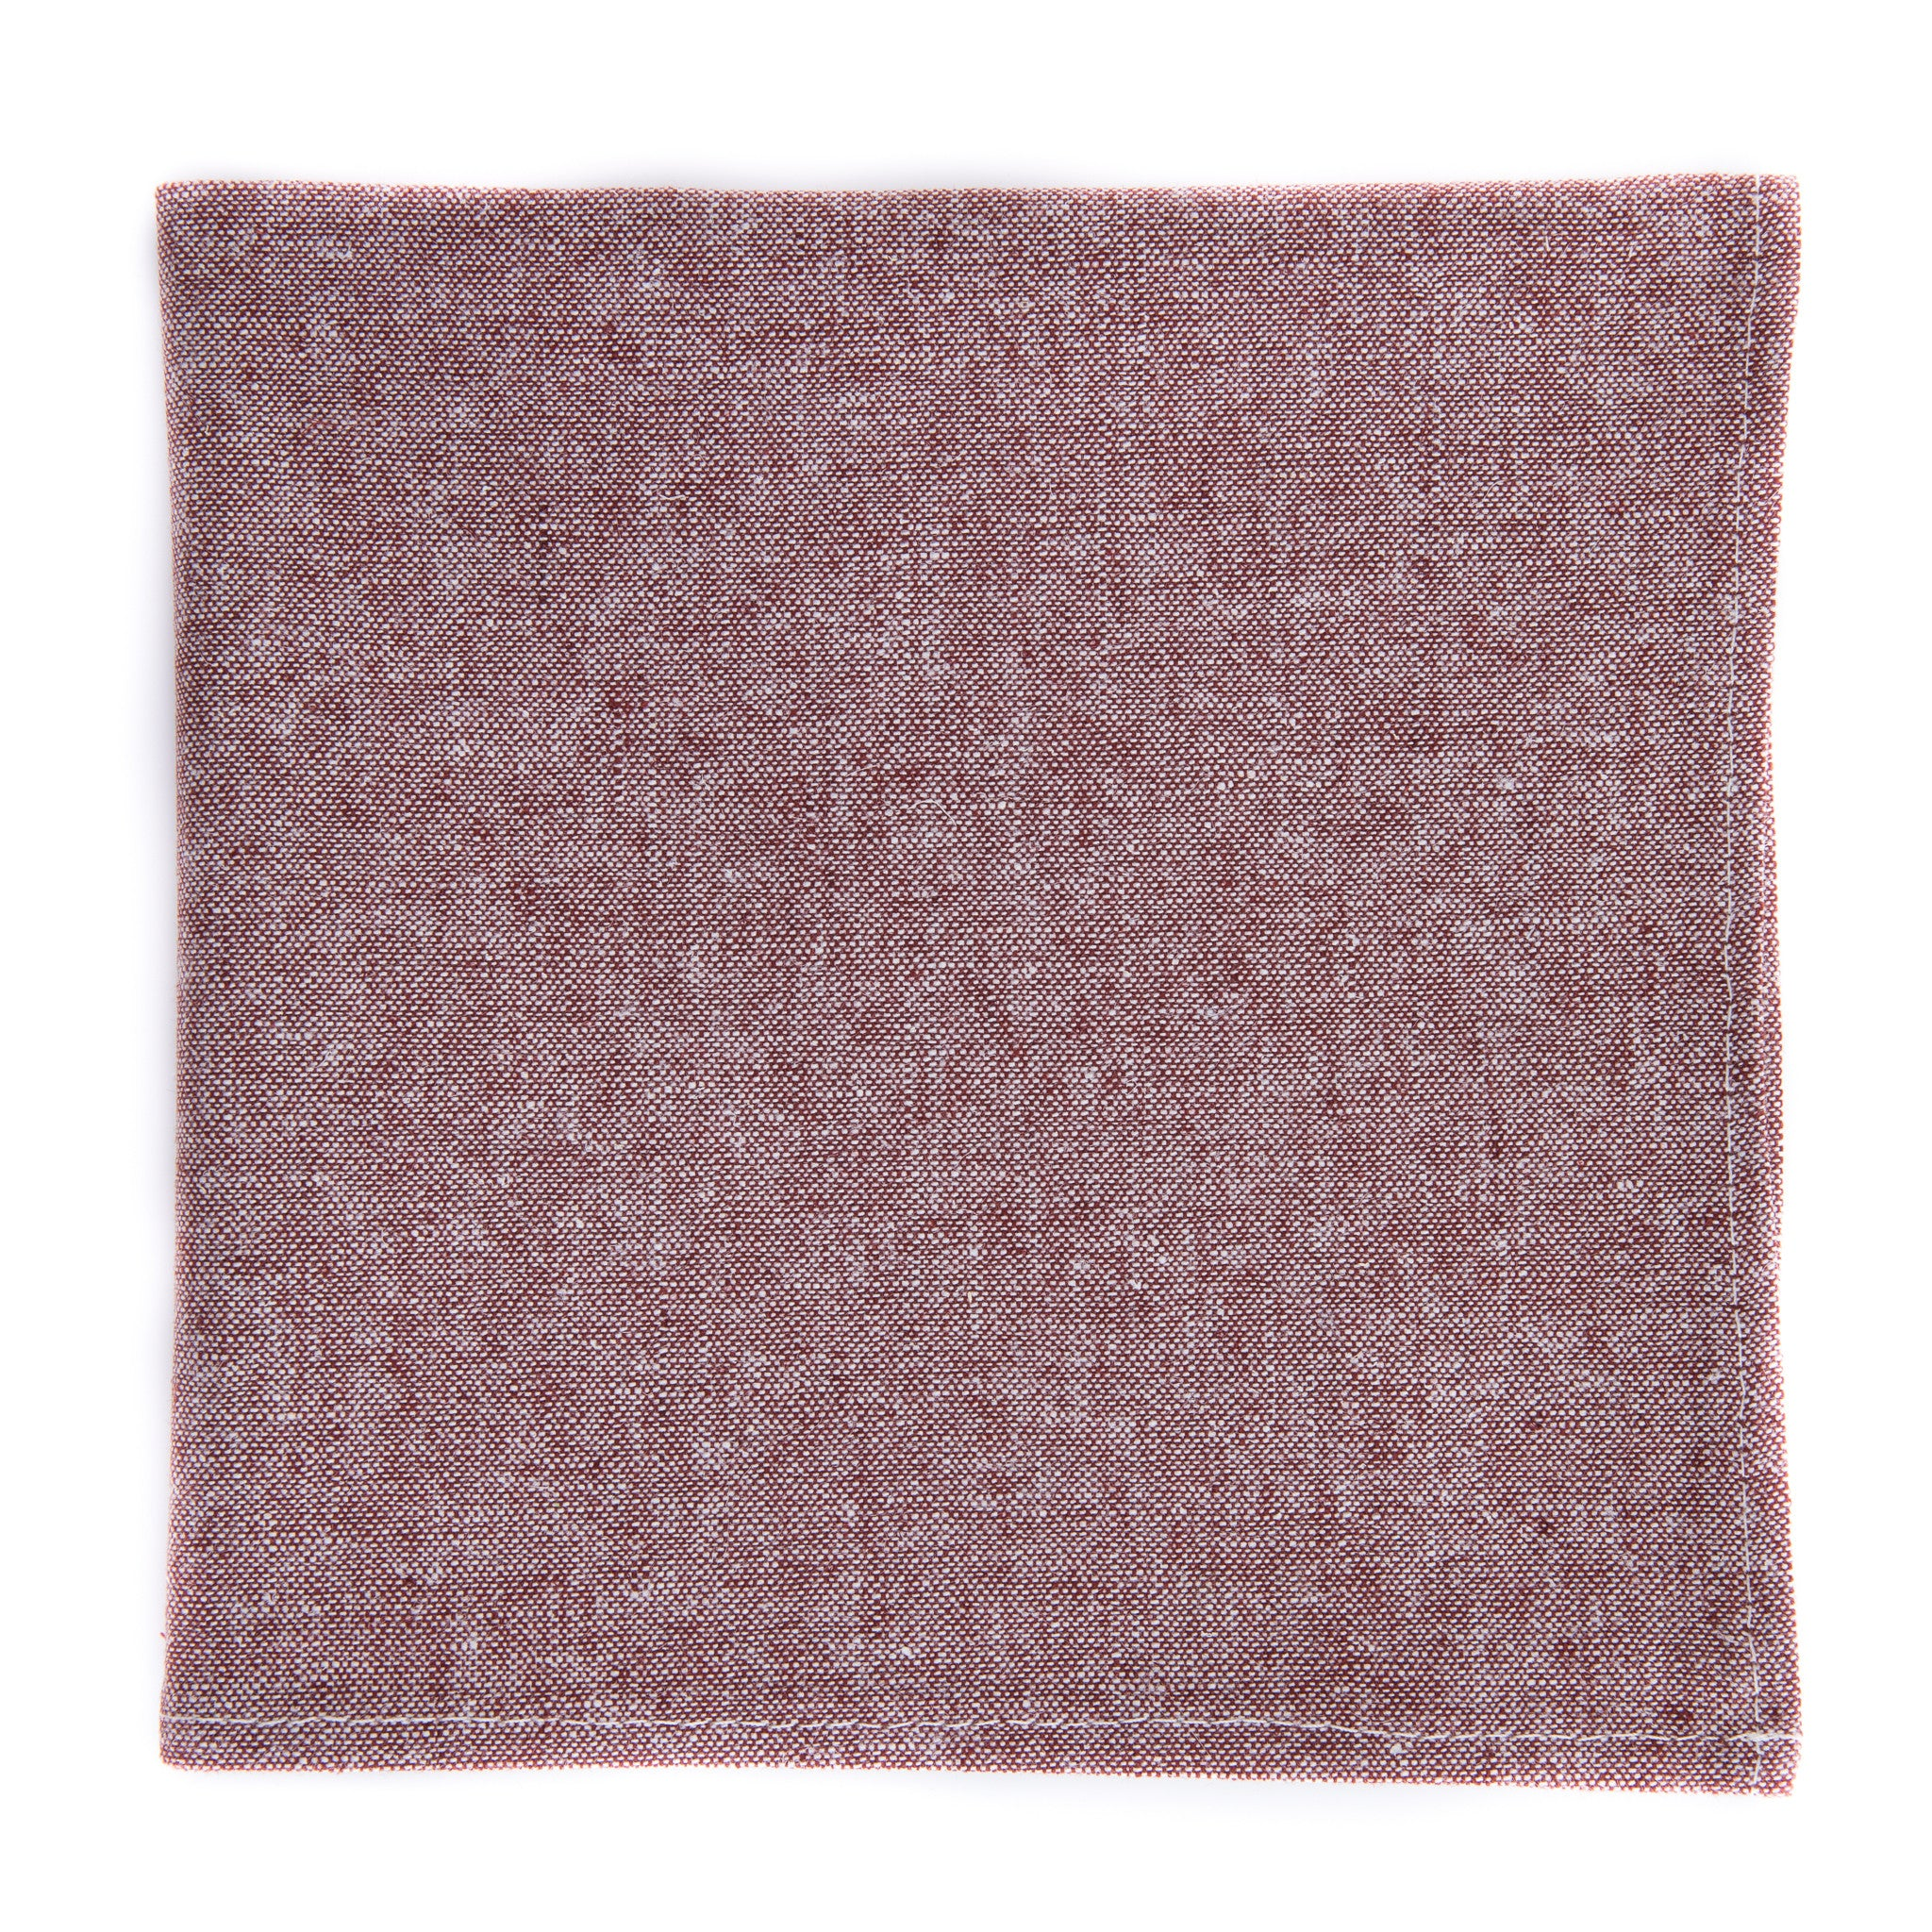 Rusty Red Chambray Pocket Square